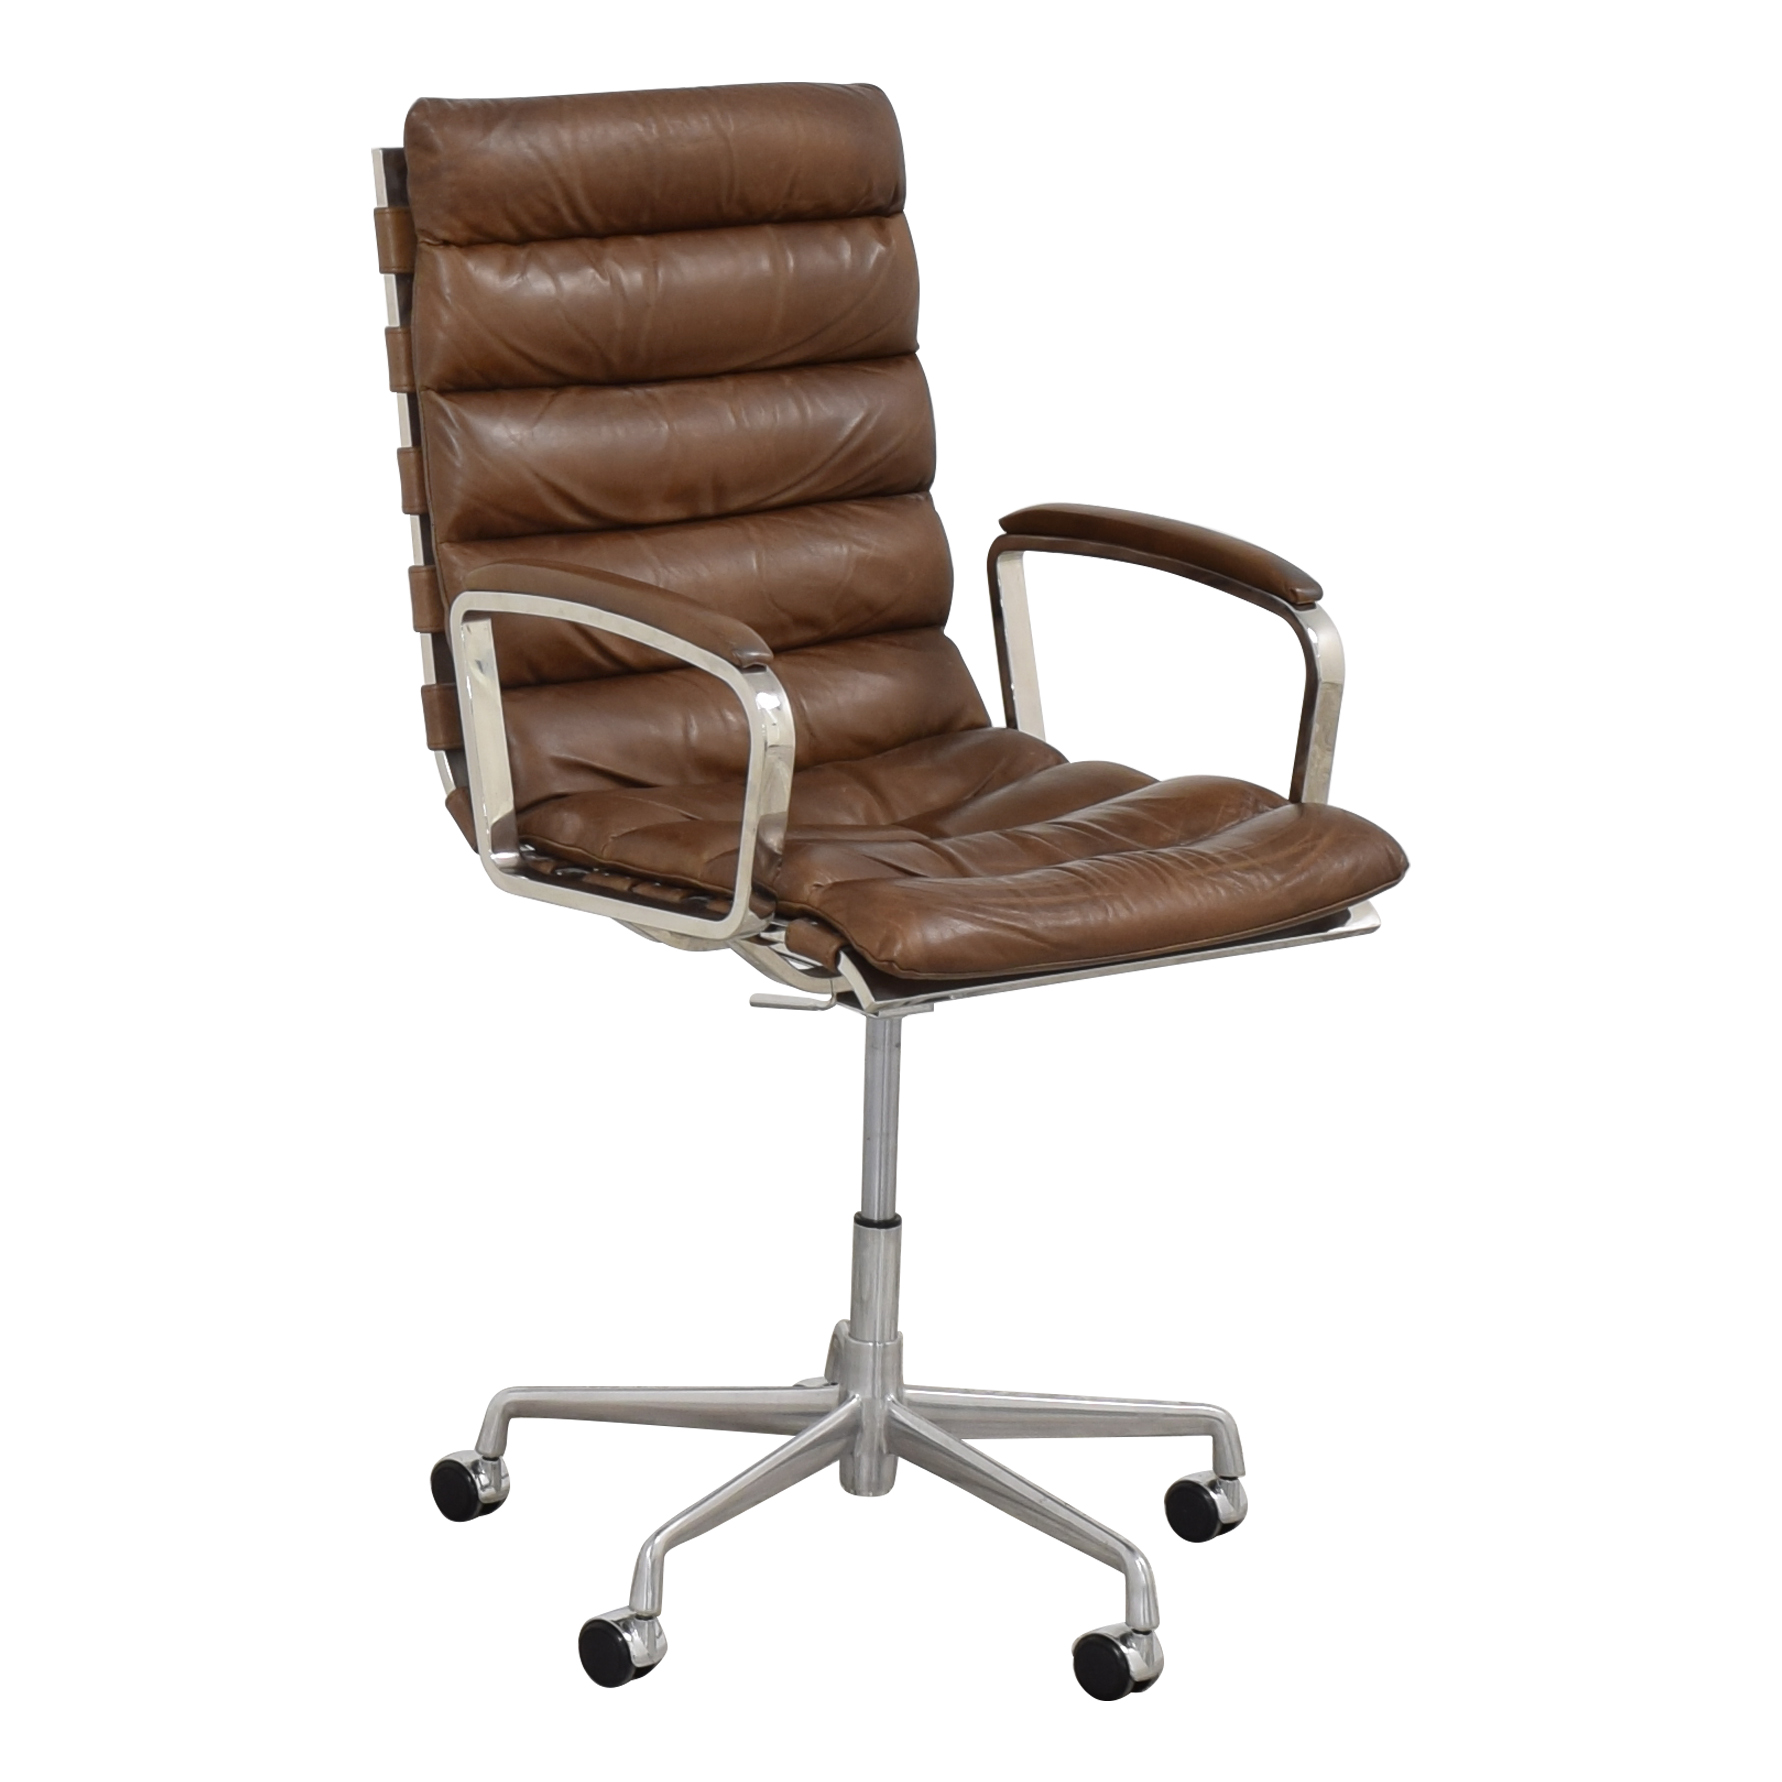 Restoration Hardware Oviedo Leather Desk Chair / Home Office Chairs